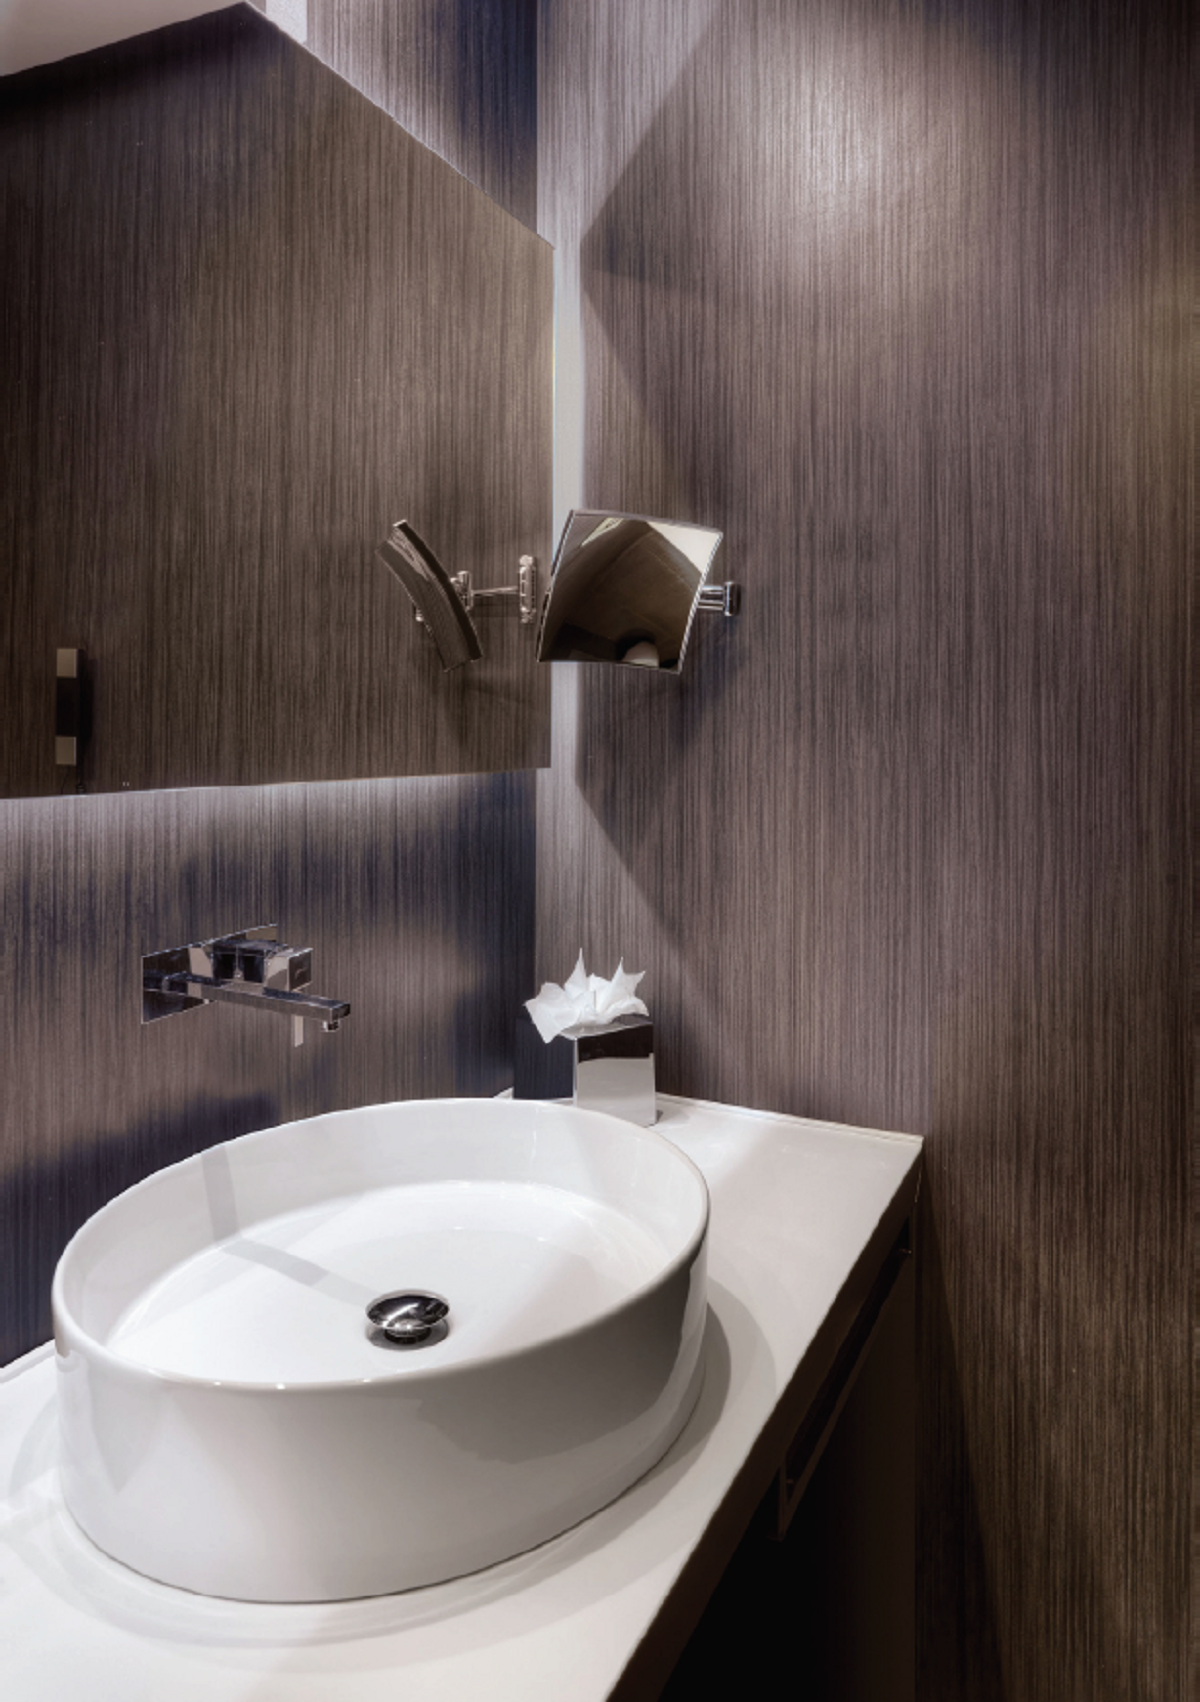 Lighting Basement Washroom Stairs: Reduced Thickness Porcelain Tile System By LATICRETE